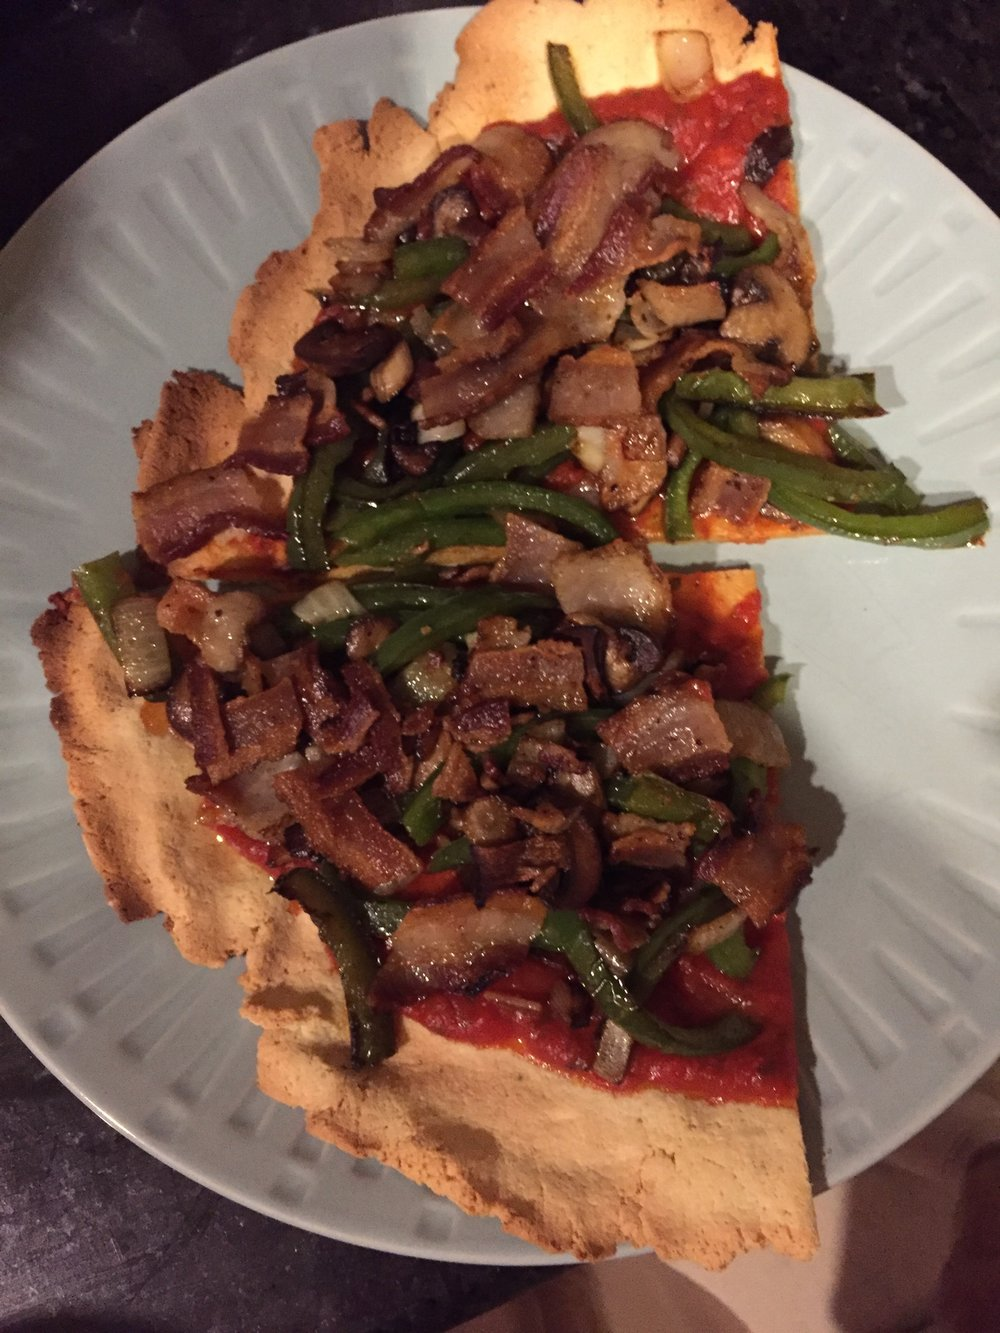 Almond flour pizza with W30 compliant bacon, onions, green peppers, and mushrooms.